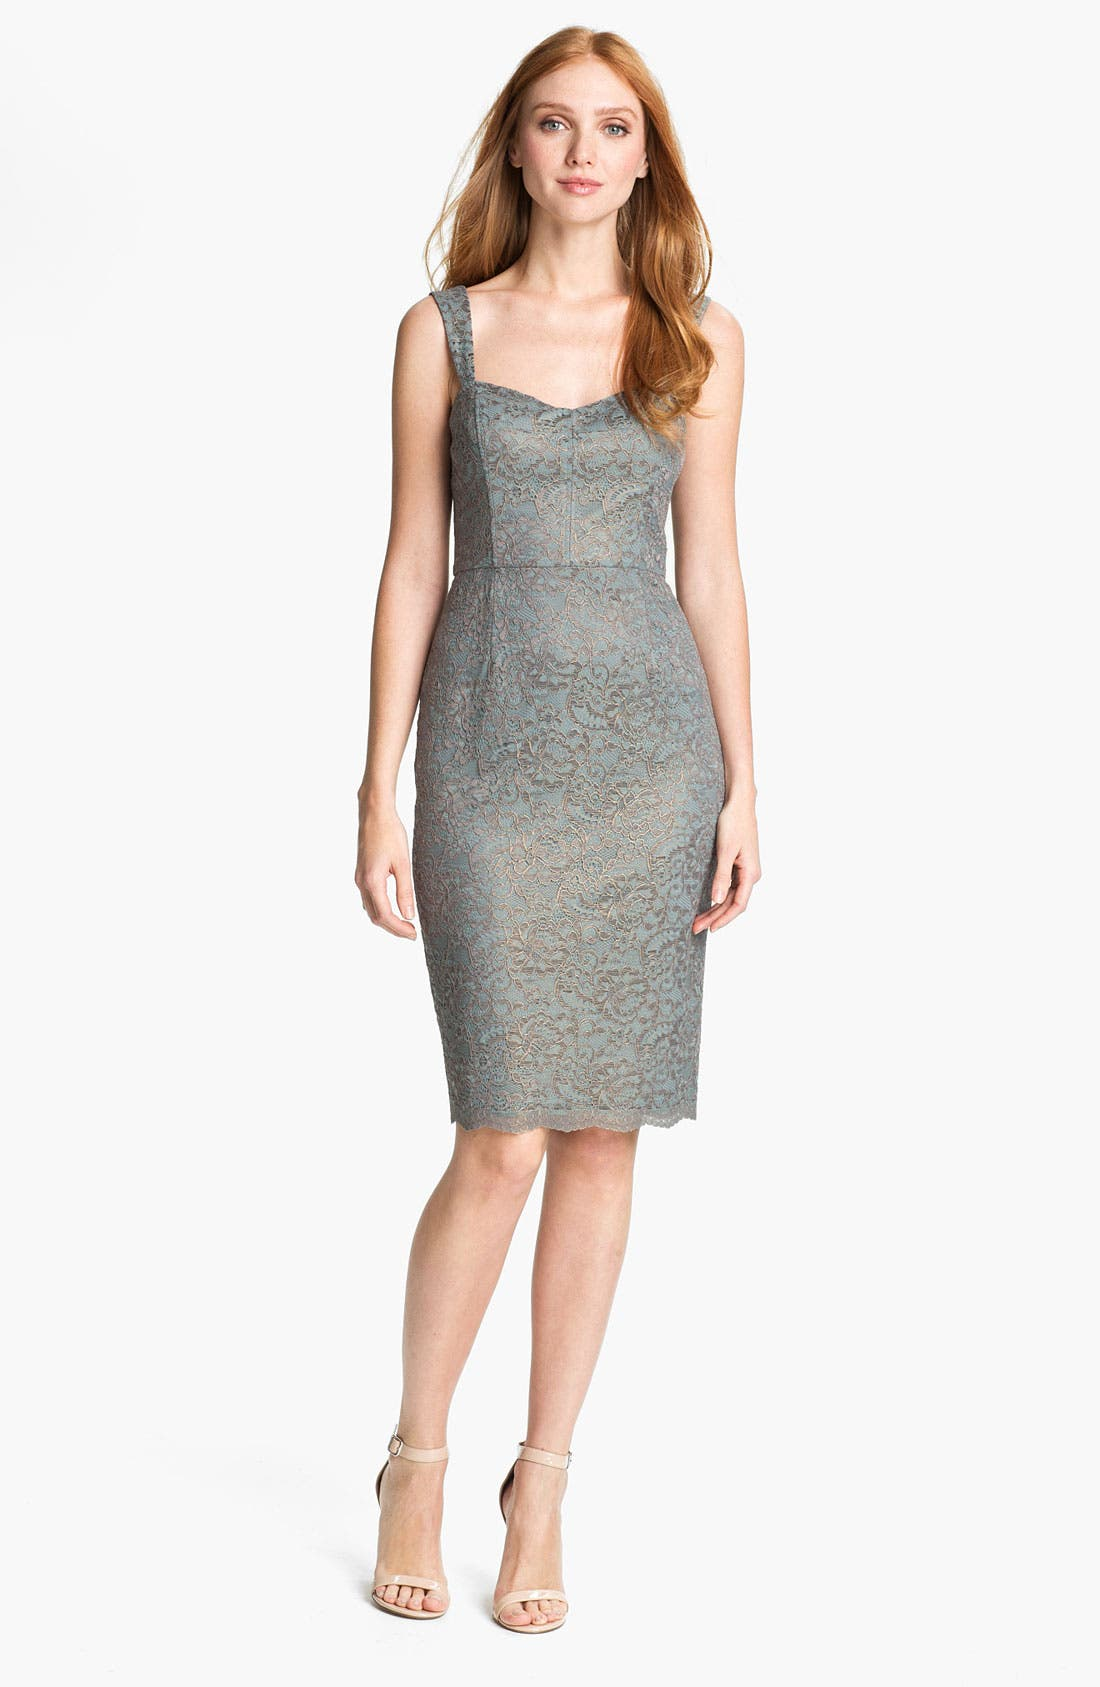 Alternate Image 1 Selected - Adrianna Papell Metallic Lace Sheath Dress